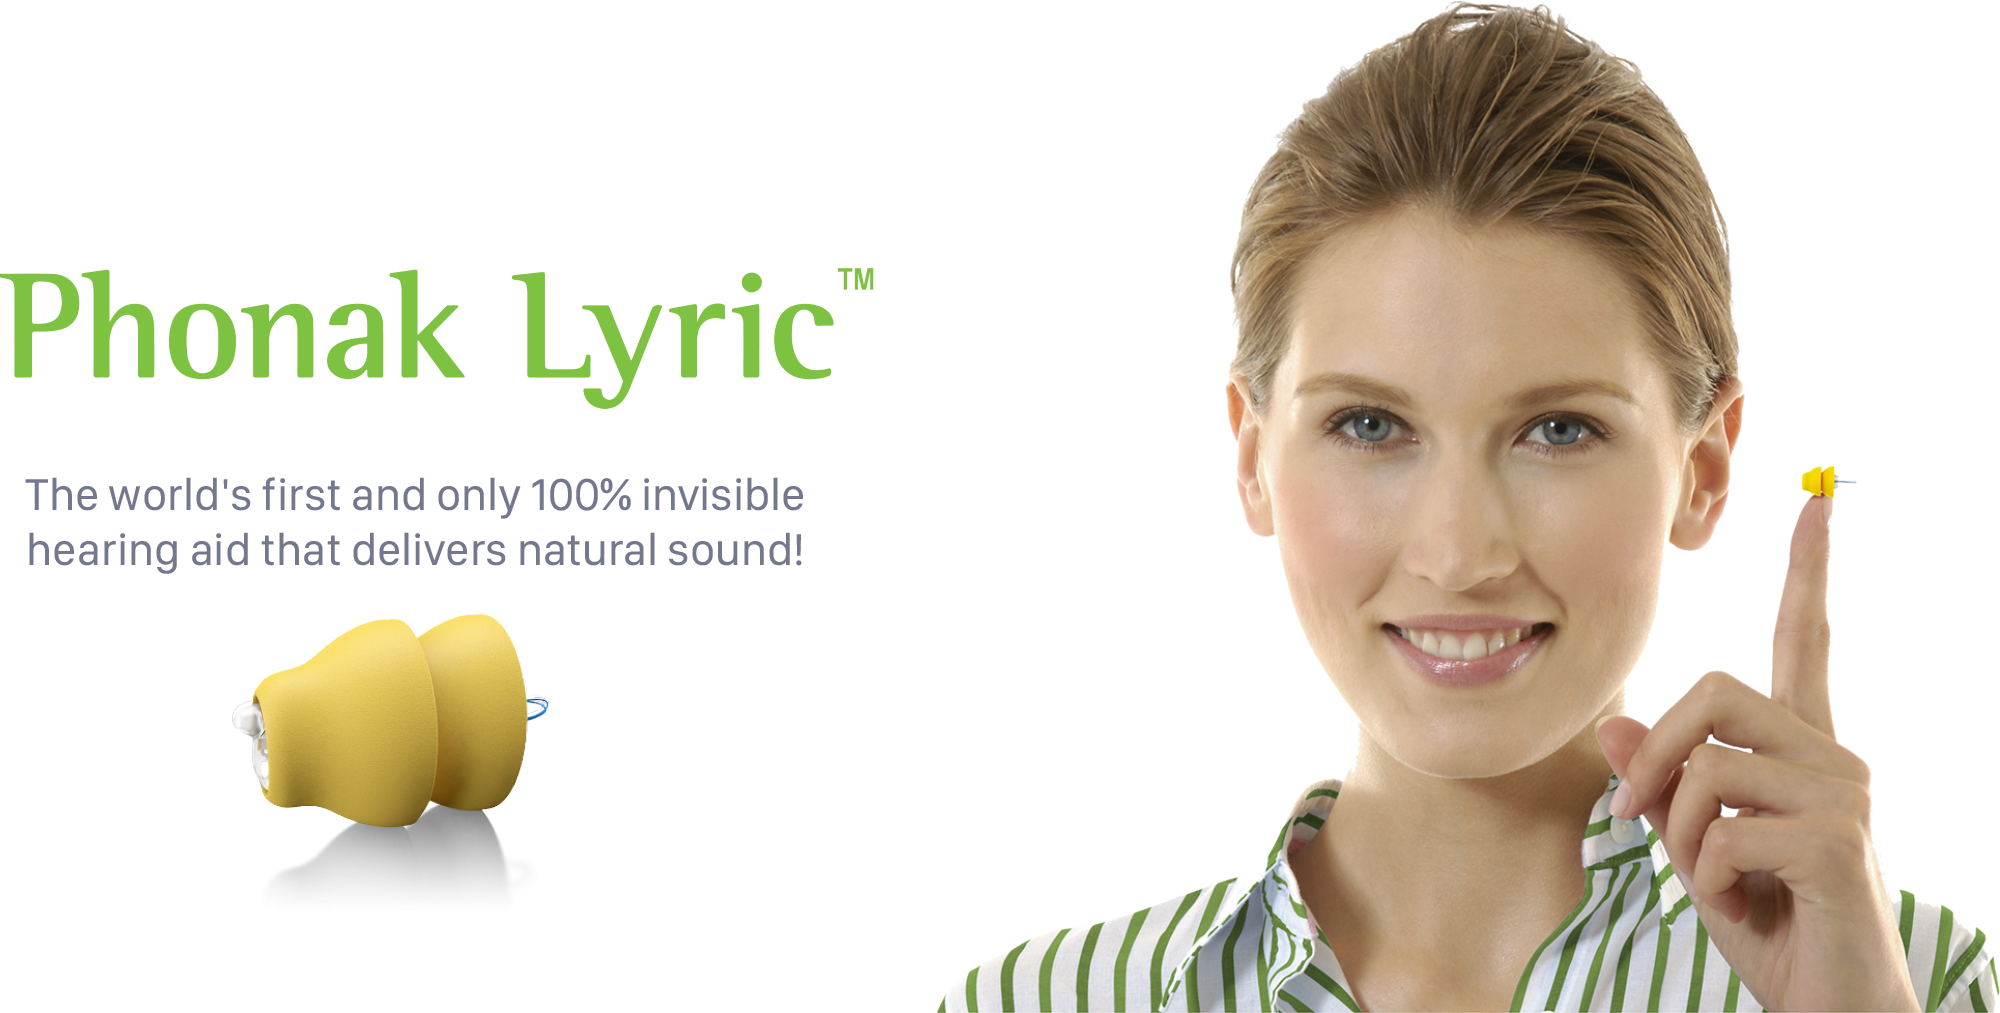 Phonak Lyric™ – The world's only 100% invisible hearing aid. Unlike traditional hearing aids, Lyric is placed deep in the ear canal, making it 100% invisible. It requires no maintenance or batteries to change or charge. Worn 24 hours a day, 7 days a week. Contact us today to learn more.